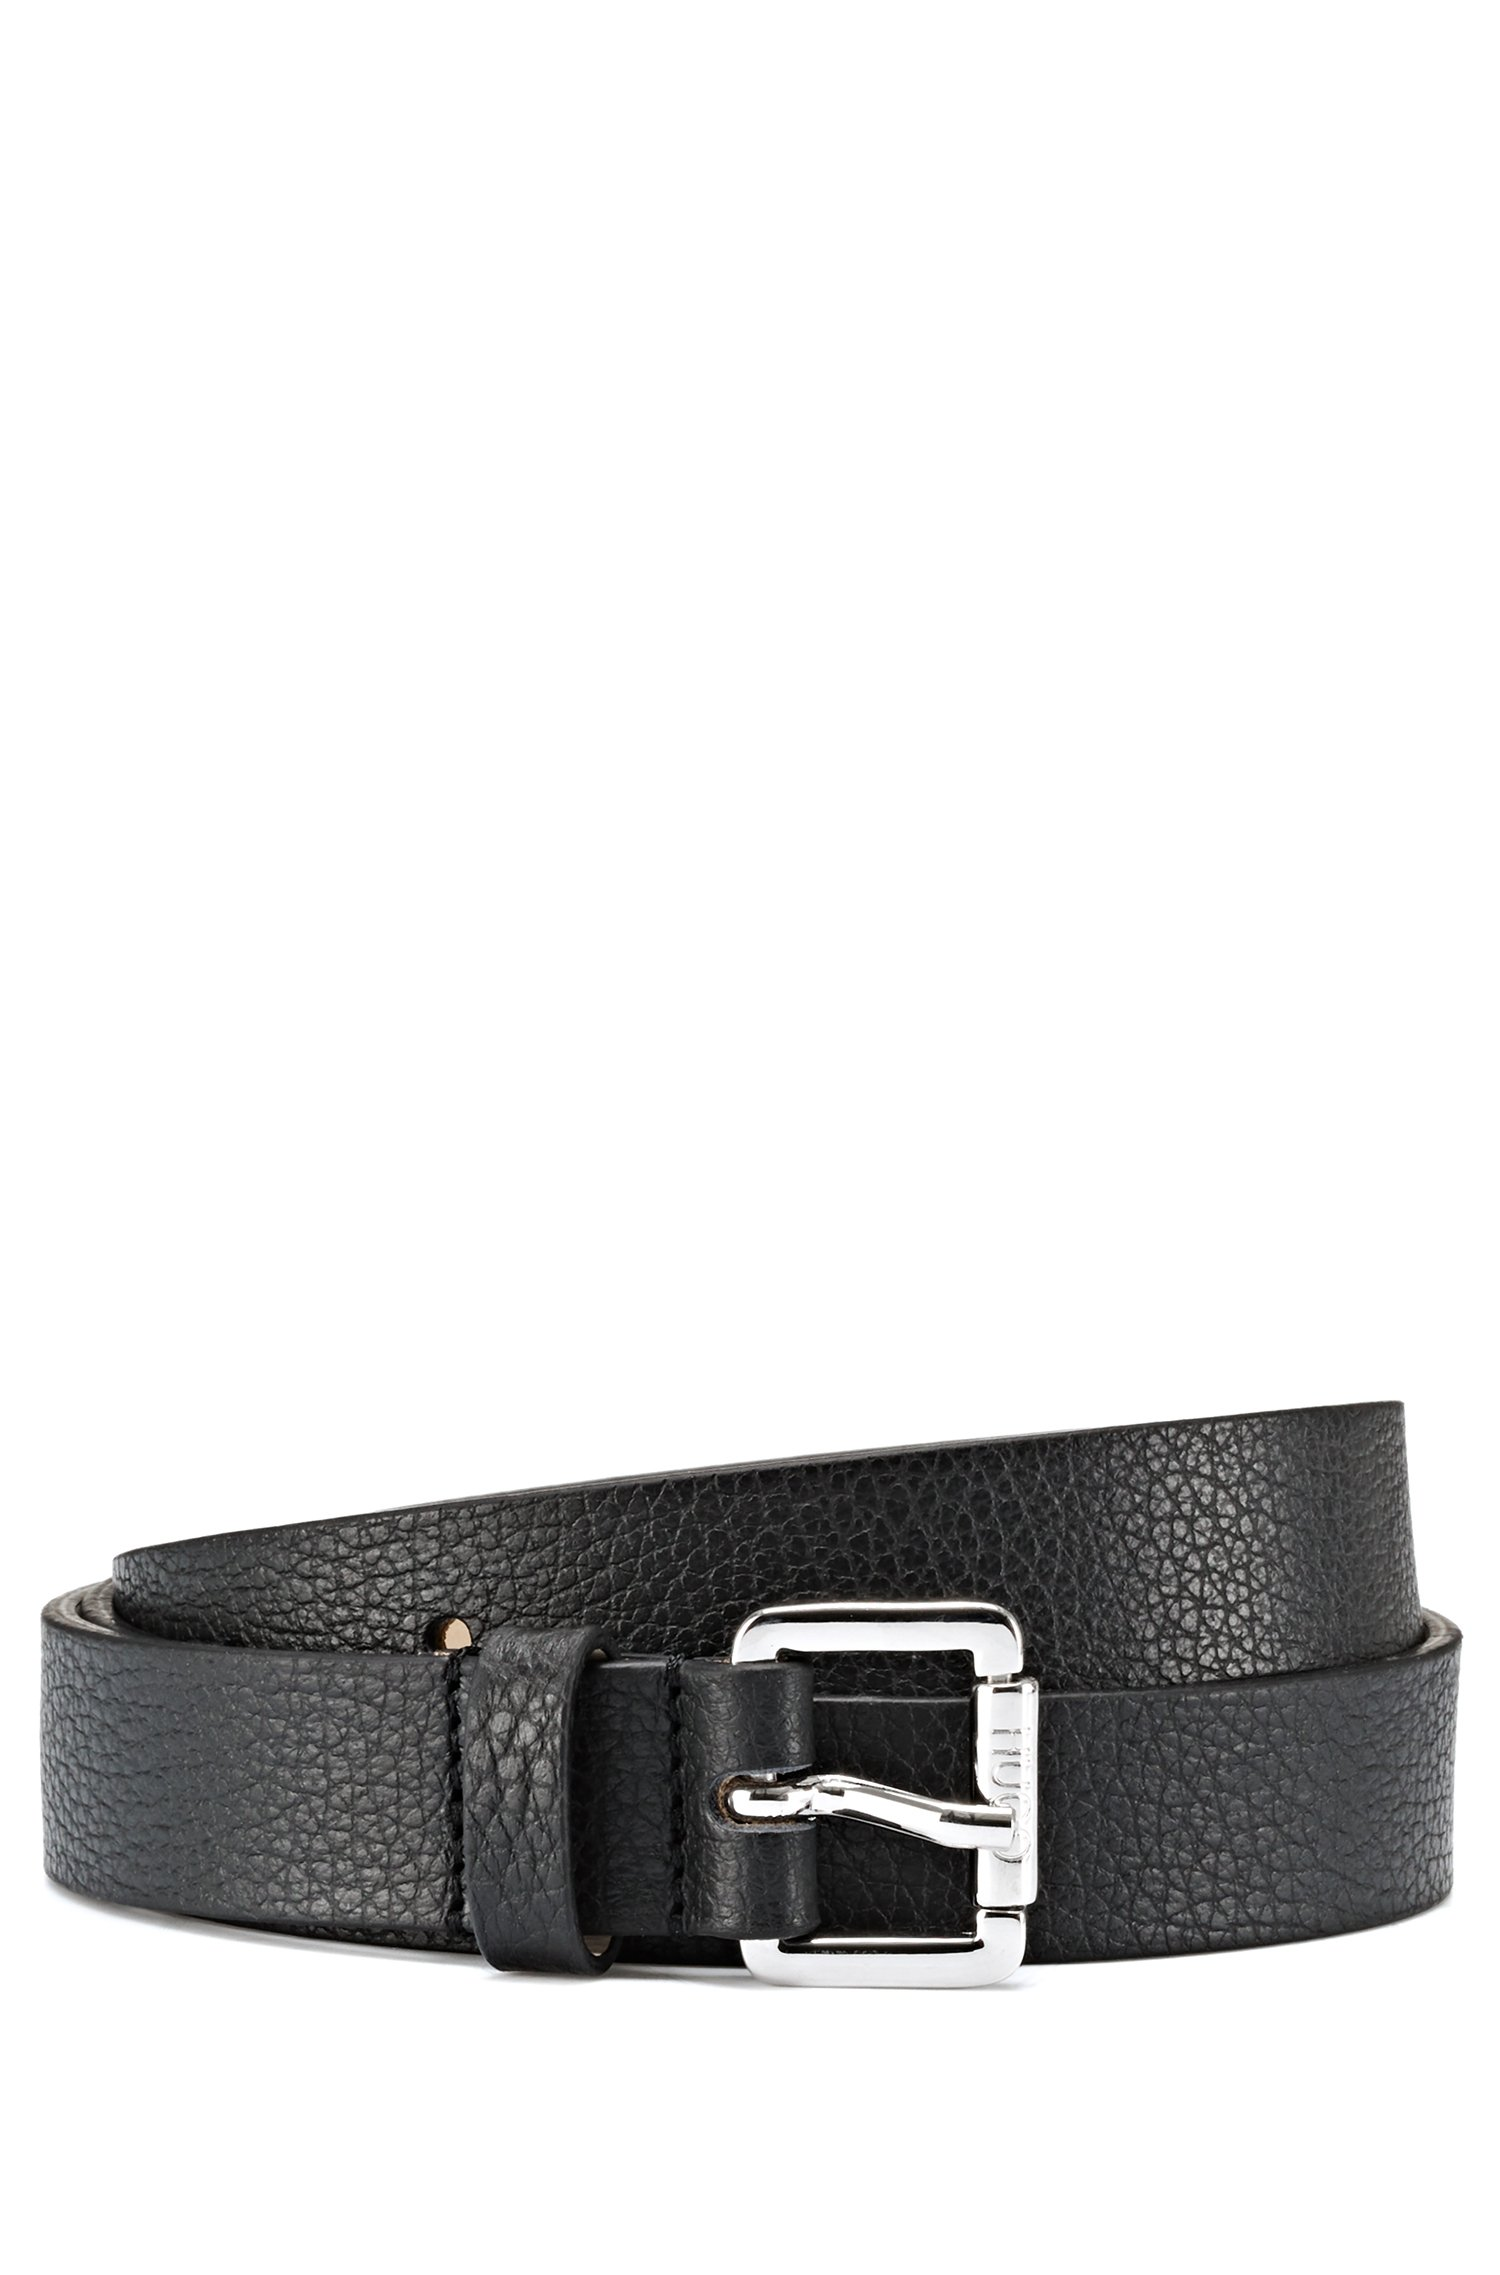 Grainy Italian-leather belt with roller buckle, Black